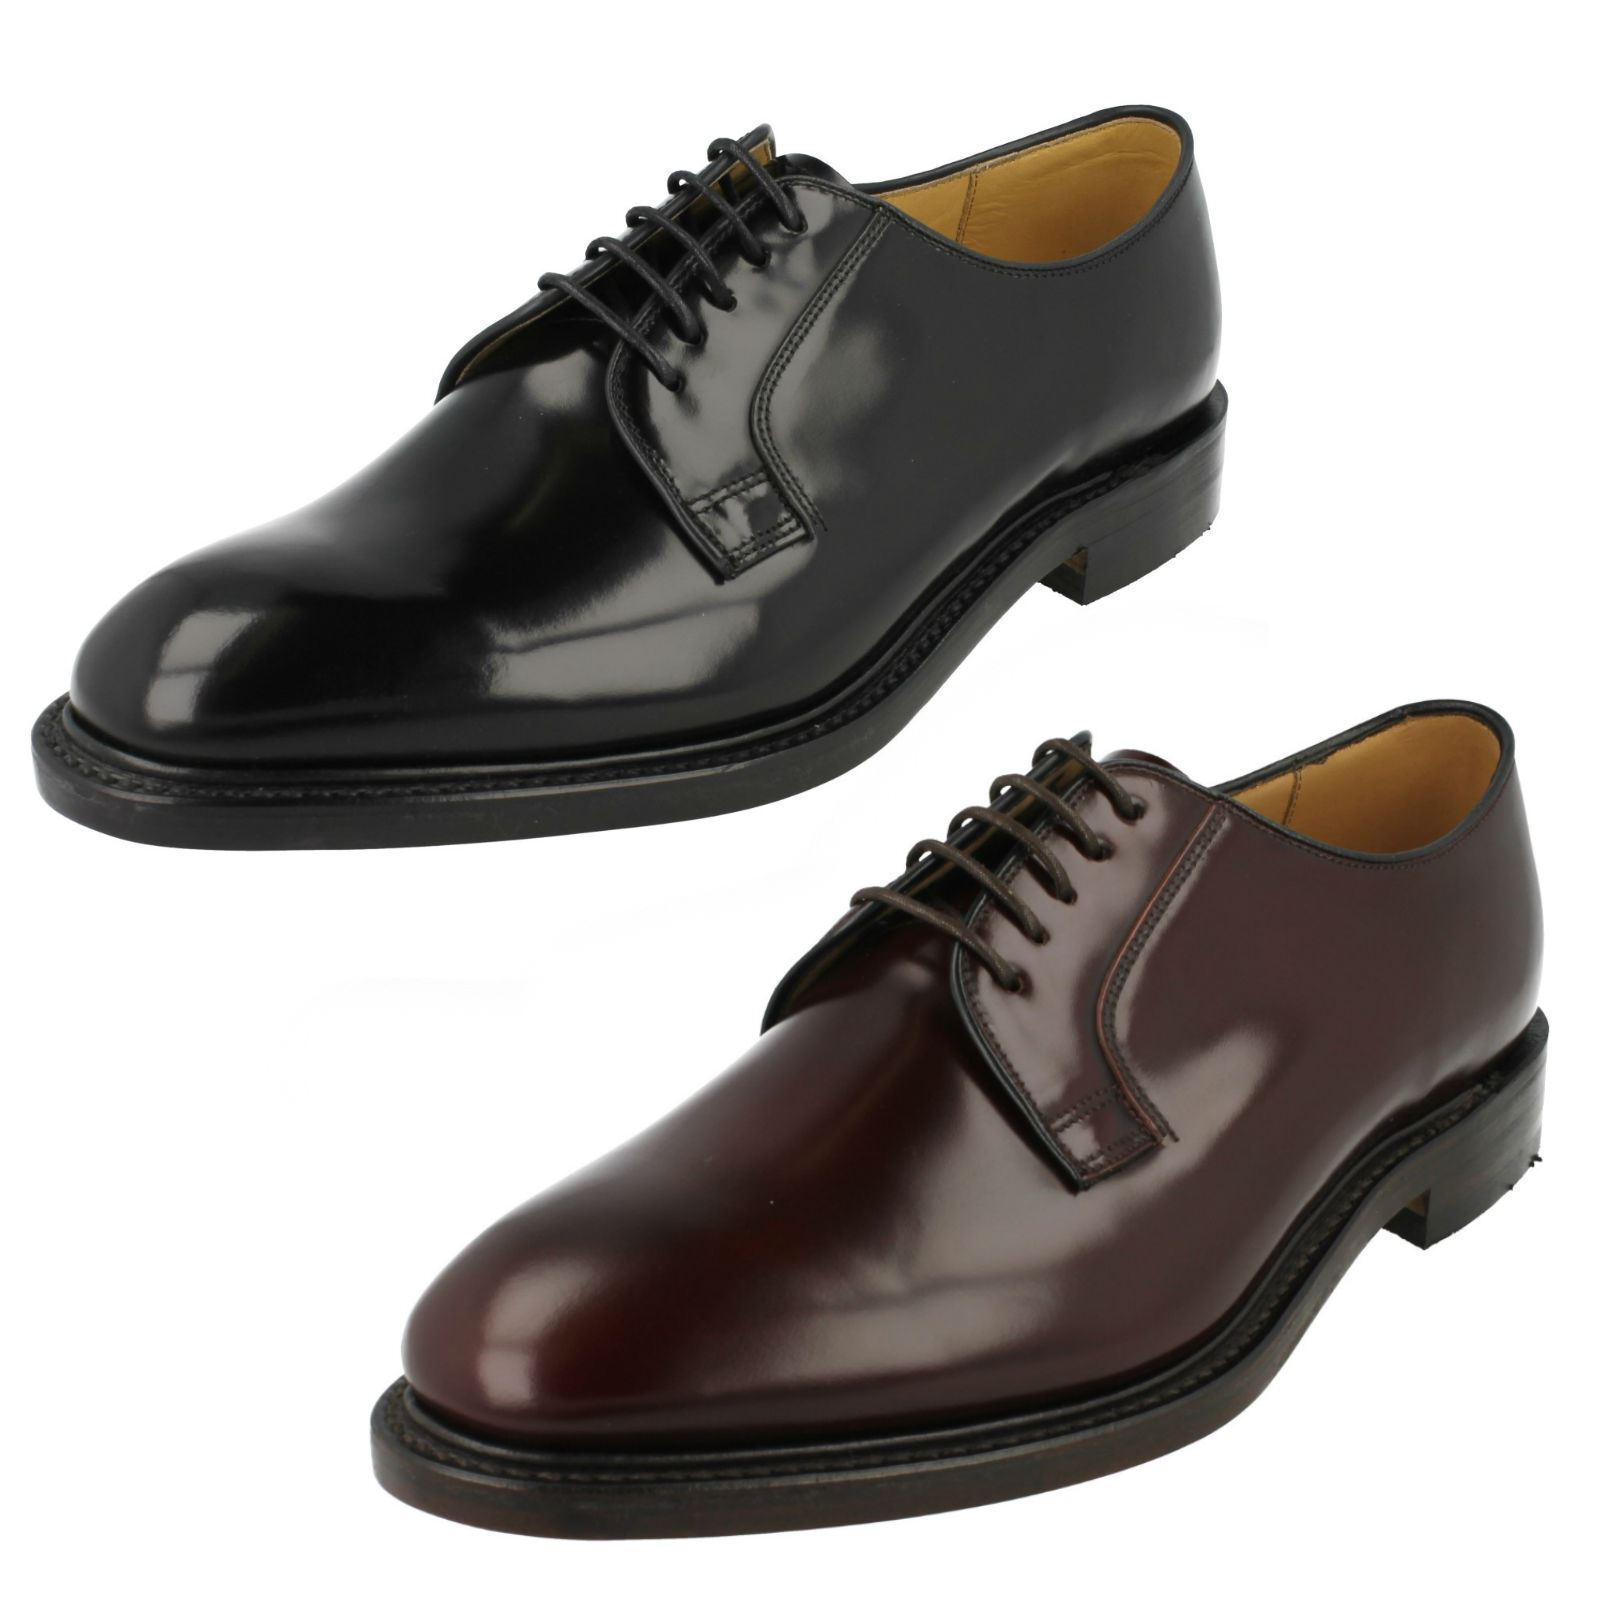 Mens Design Loake Smart Stylish Lace Up shoes - 771